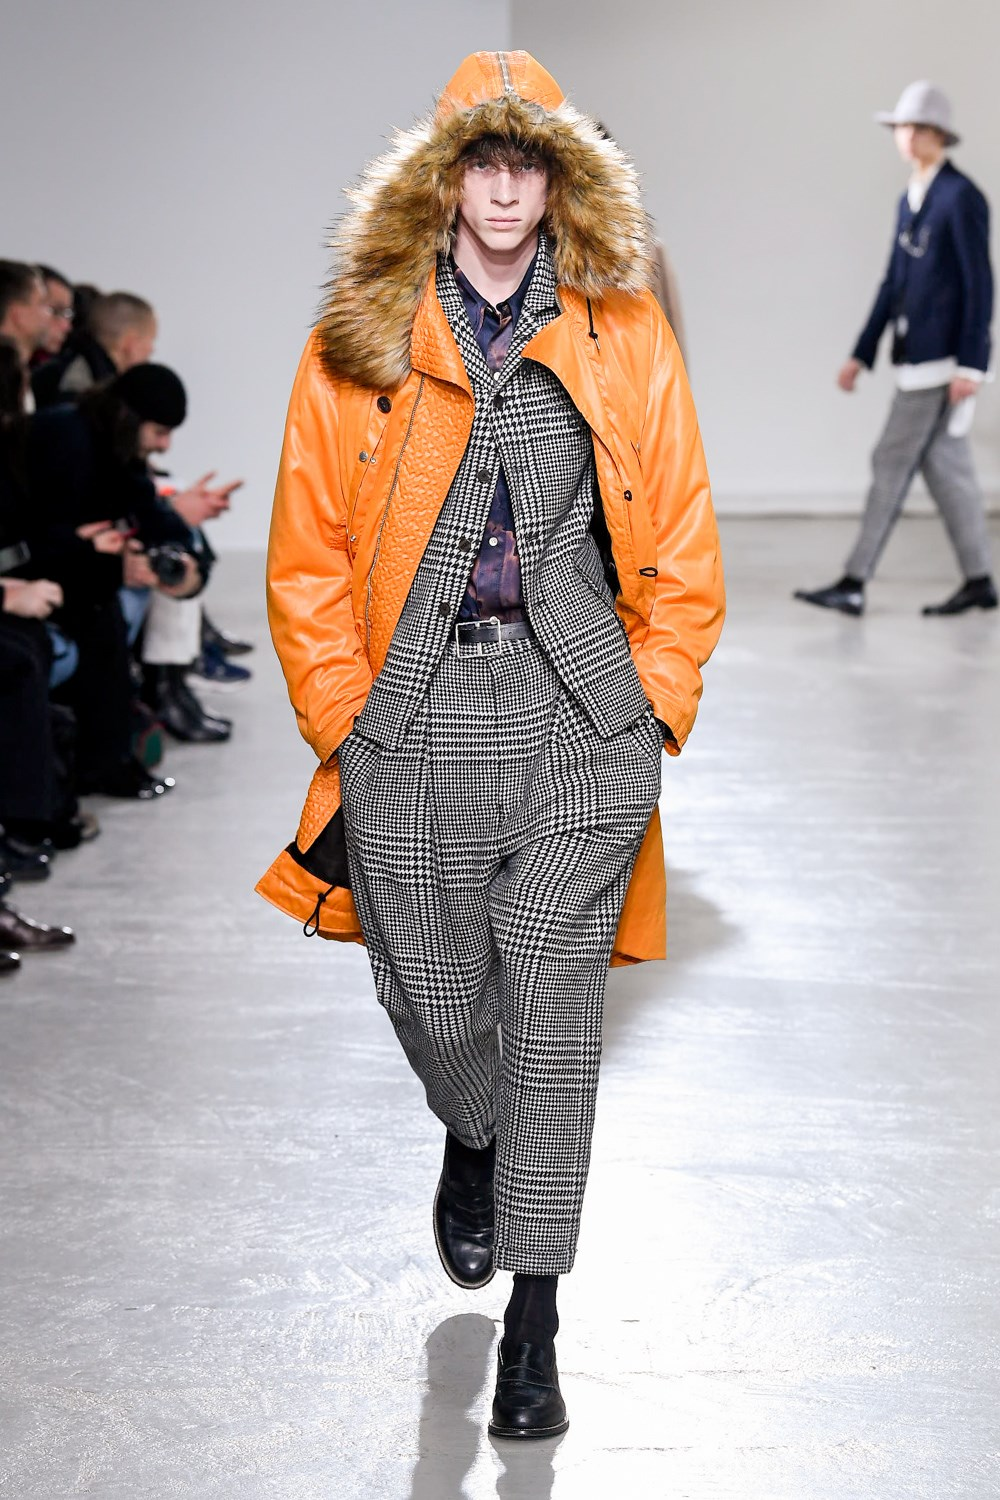 Bed J.w. Ford Fall 2020 Men's Fashion Show Photos